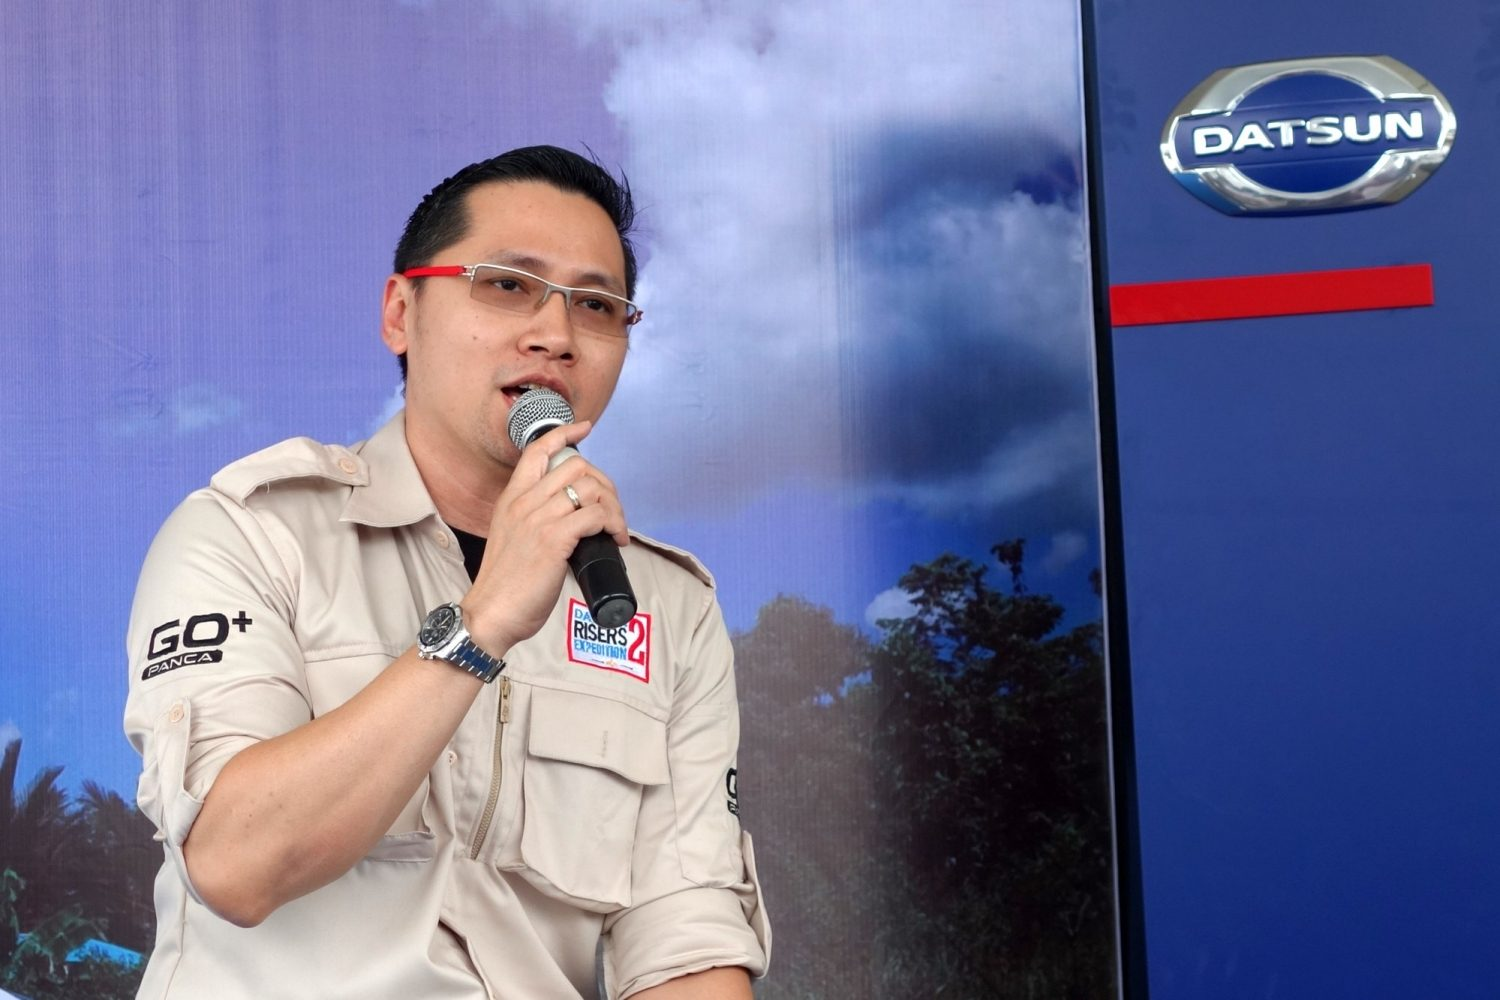 Head of Marketing Datsun Indonesia - Christian Gandawinata